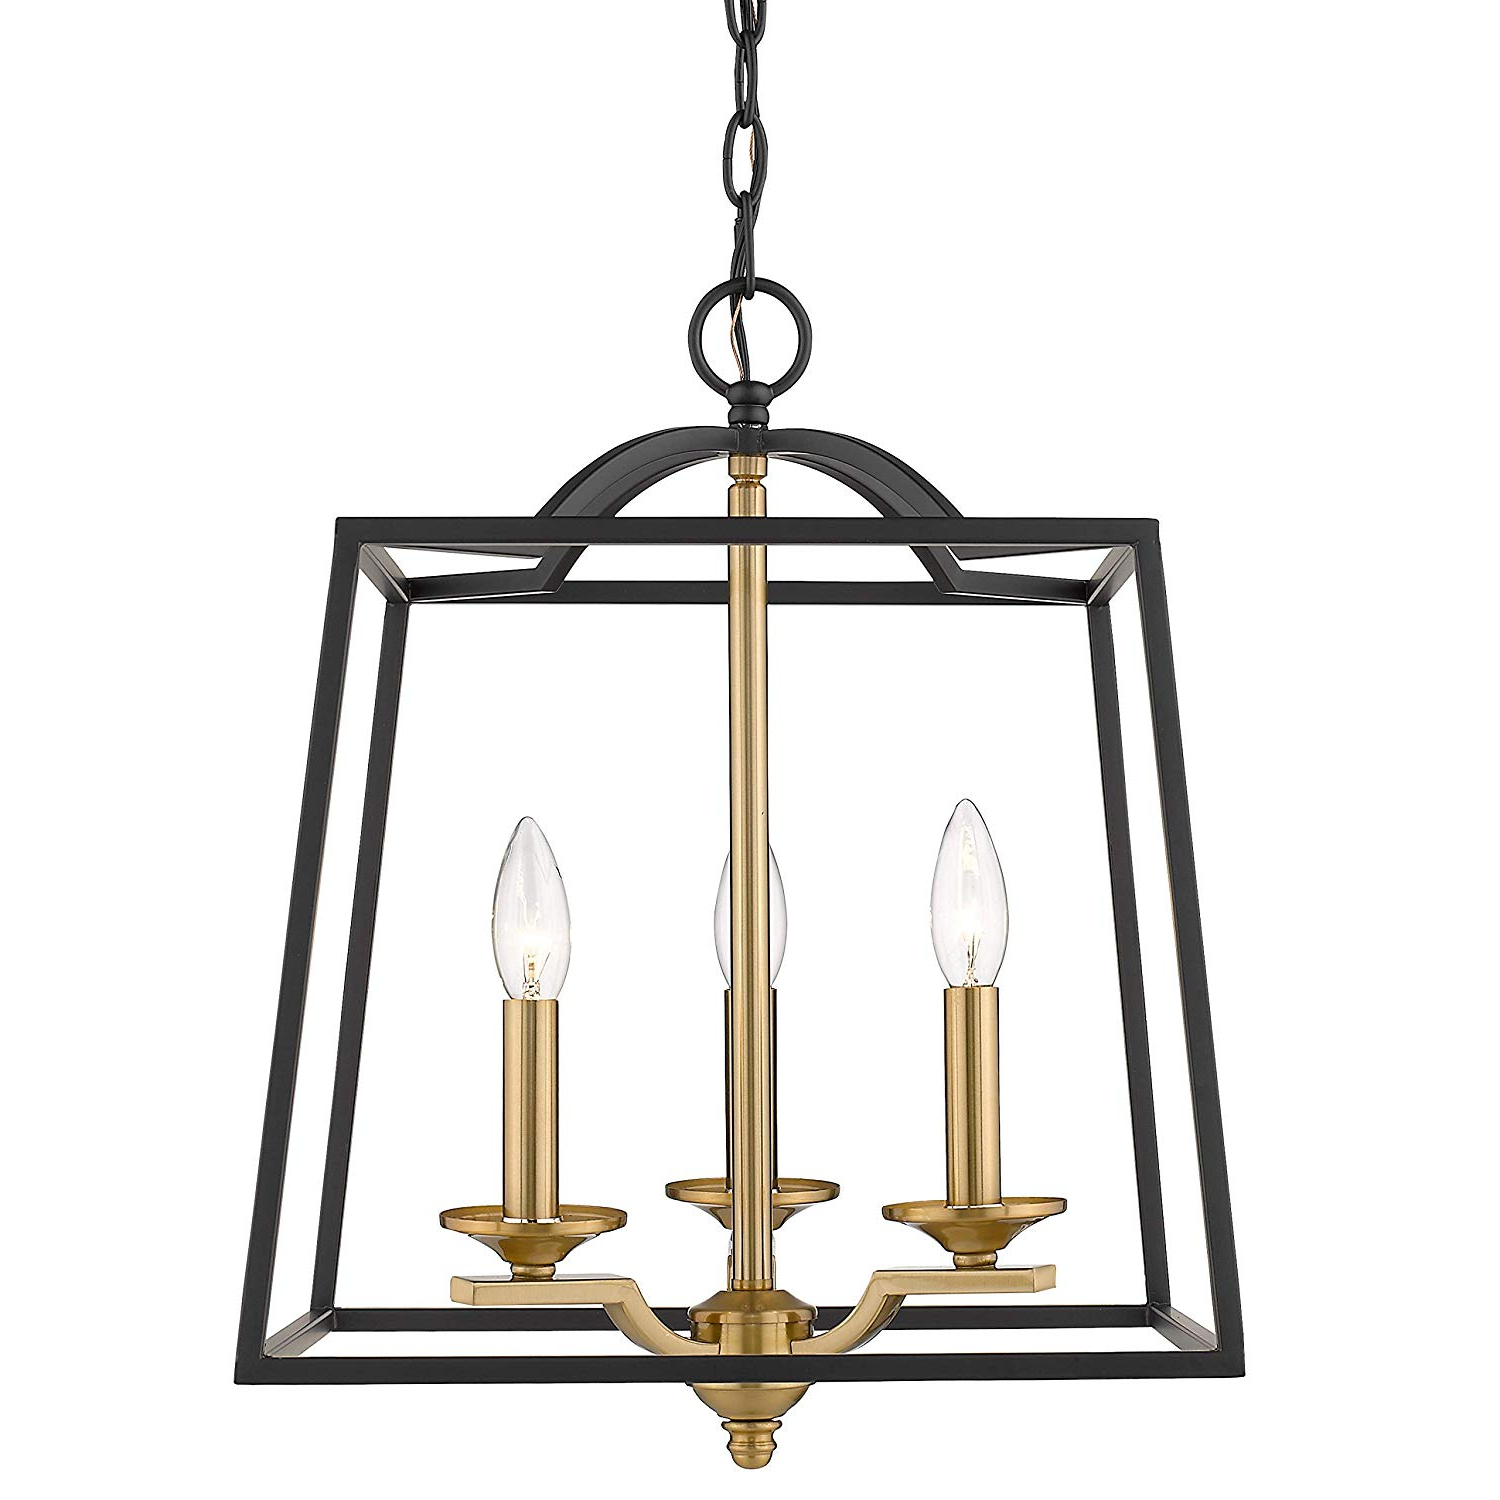 Emliviar 3 Light Foyer Chandelier, Pendant Light With Lantern Style Cage  Hanging Light Fixture For Hall Kitchen Island, Black And Gold Finish,  2086P 3 Within Popular Kenedy 9 Light Candle Style Chandeliers (Gallery 8 of 25)